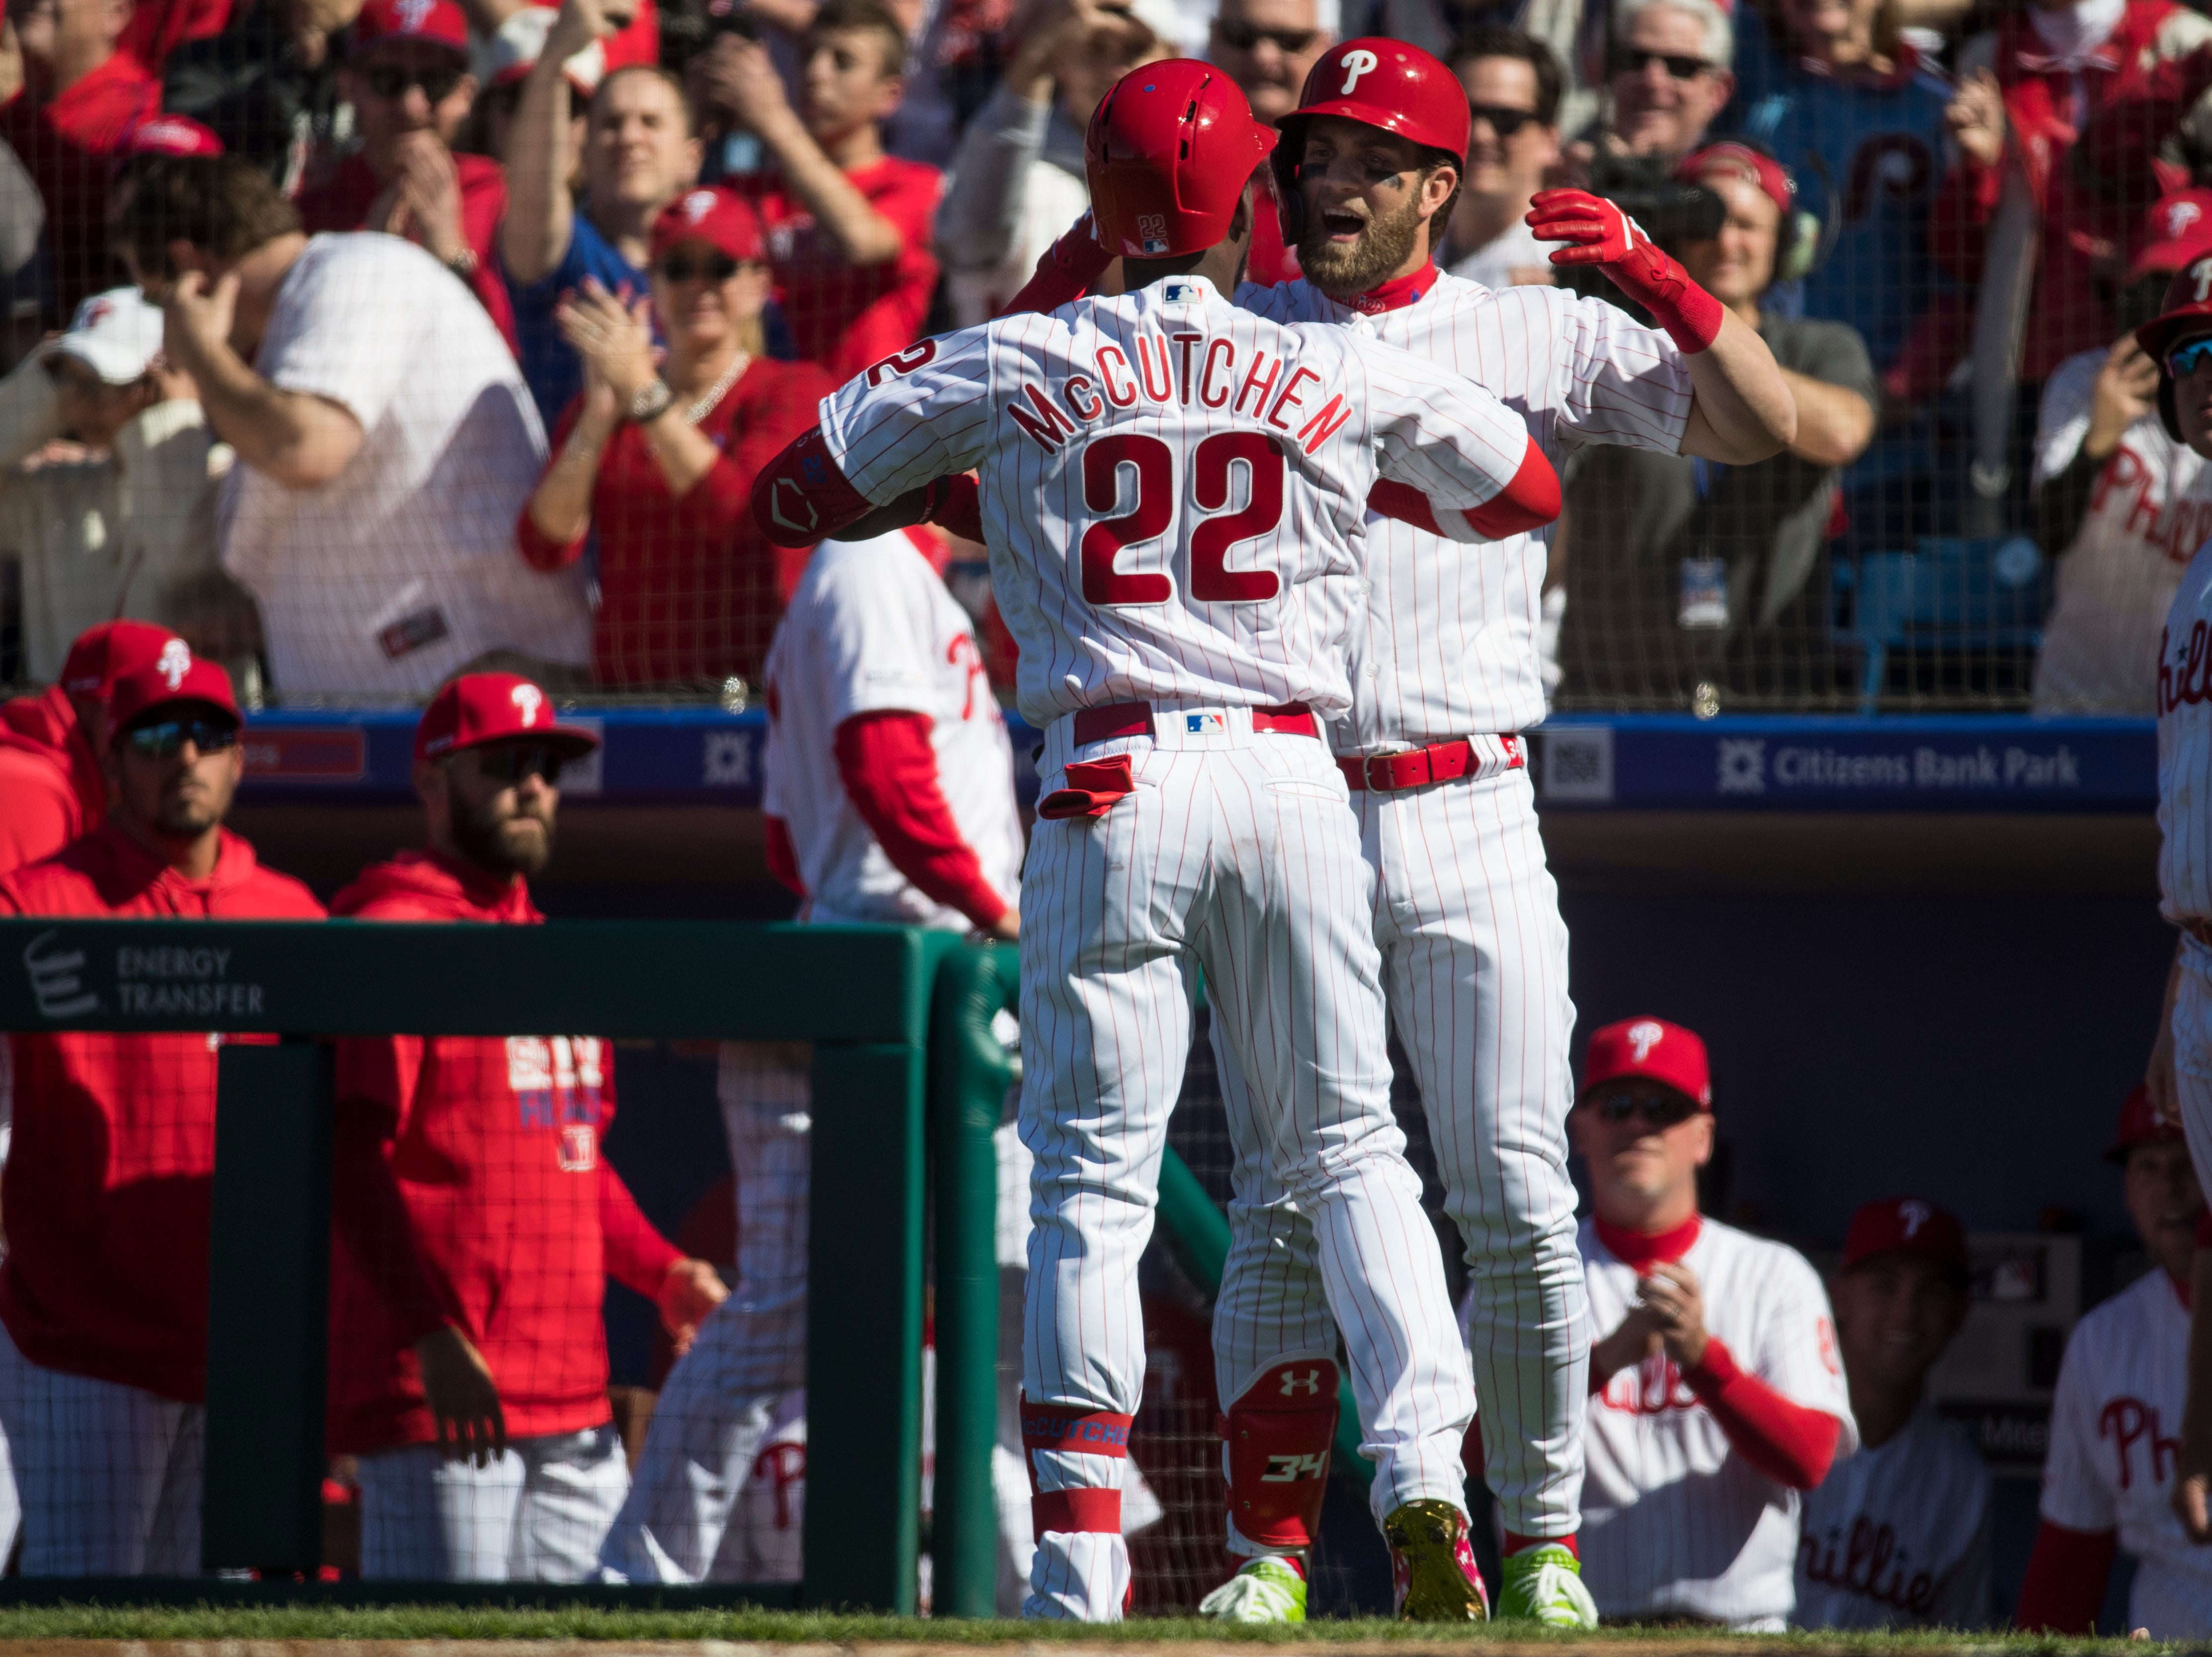 Bryce Harper, hears a few boos, shows love to fans as Phillies blast Braves in opener